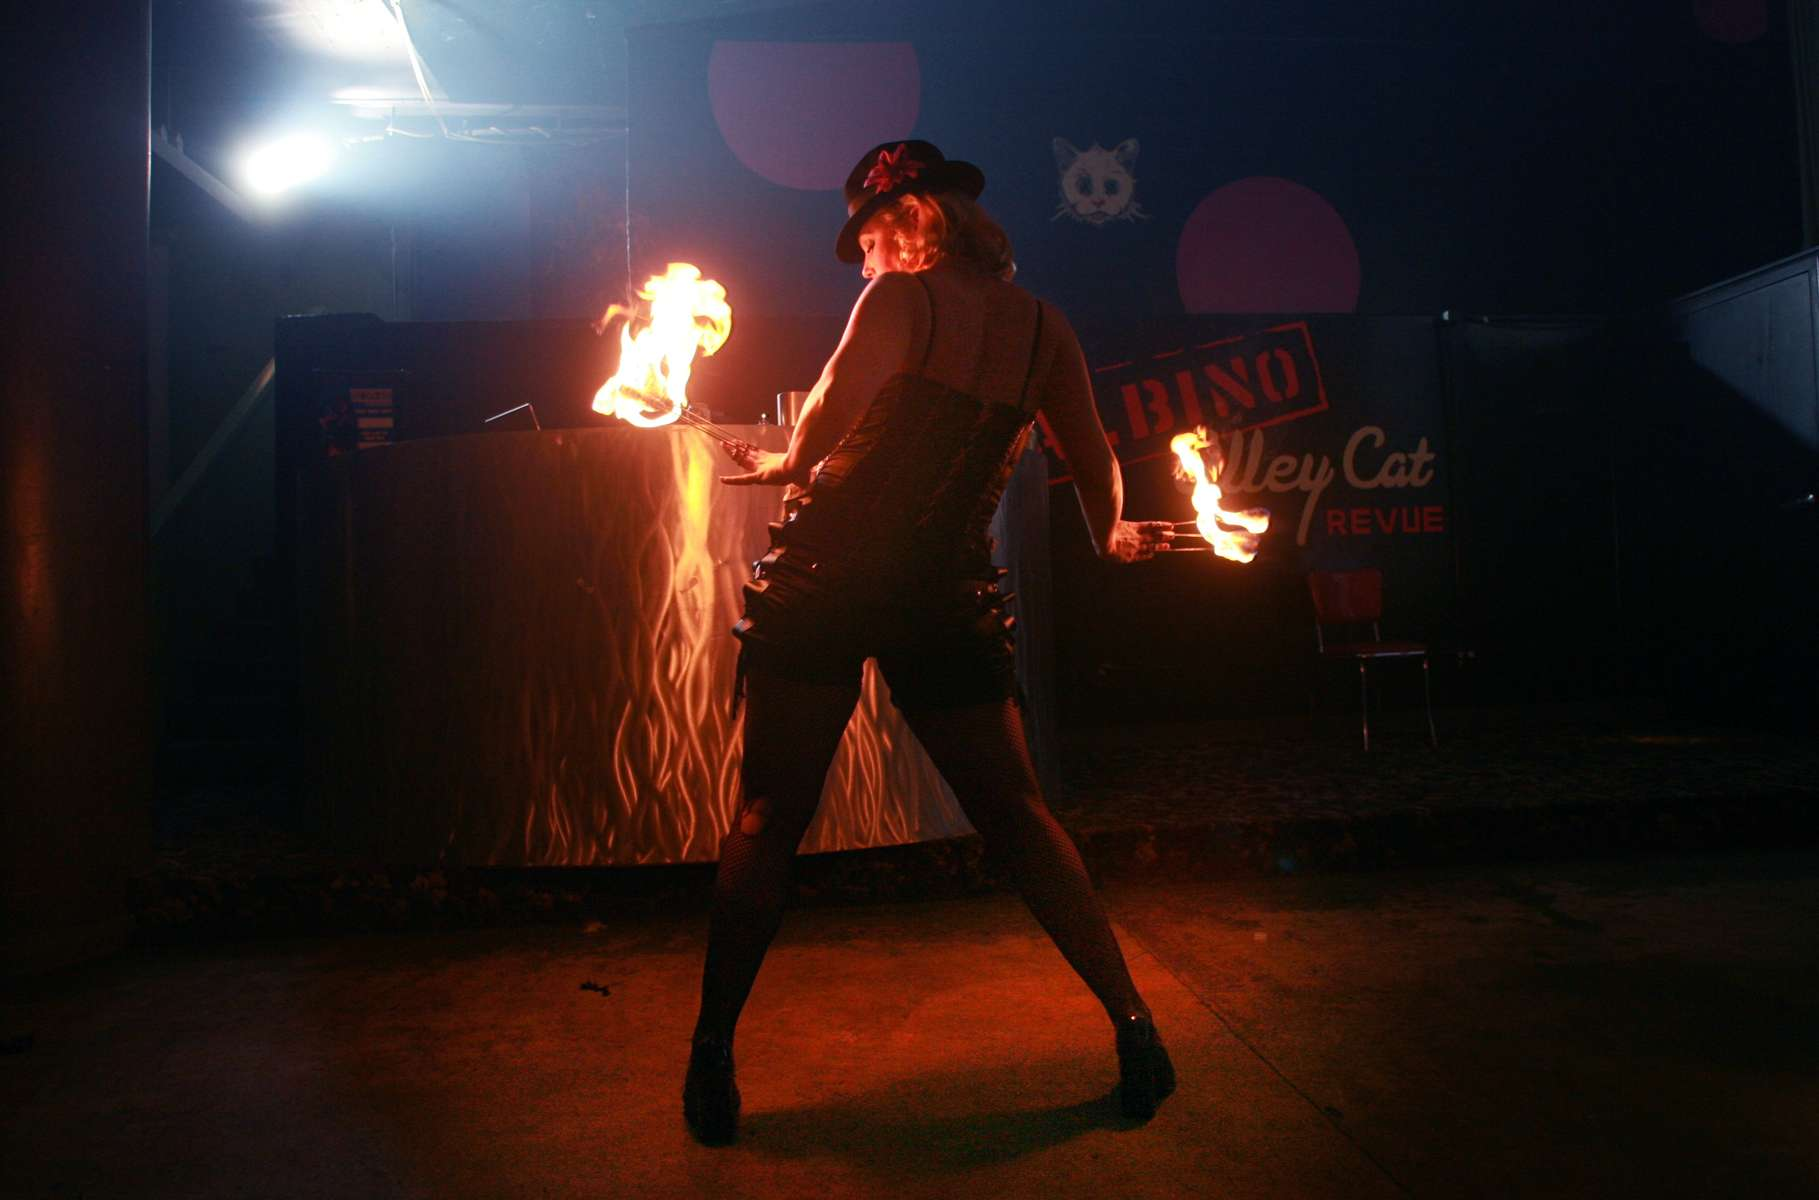 Sturdy Gurlesque performs one of her burlesque routines that feature fire as part of the Albino Alley Cat Revue on stage at Rue 13 on Washington Ave in St. Louis.